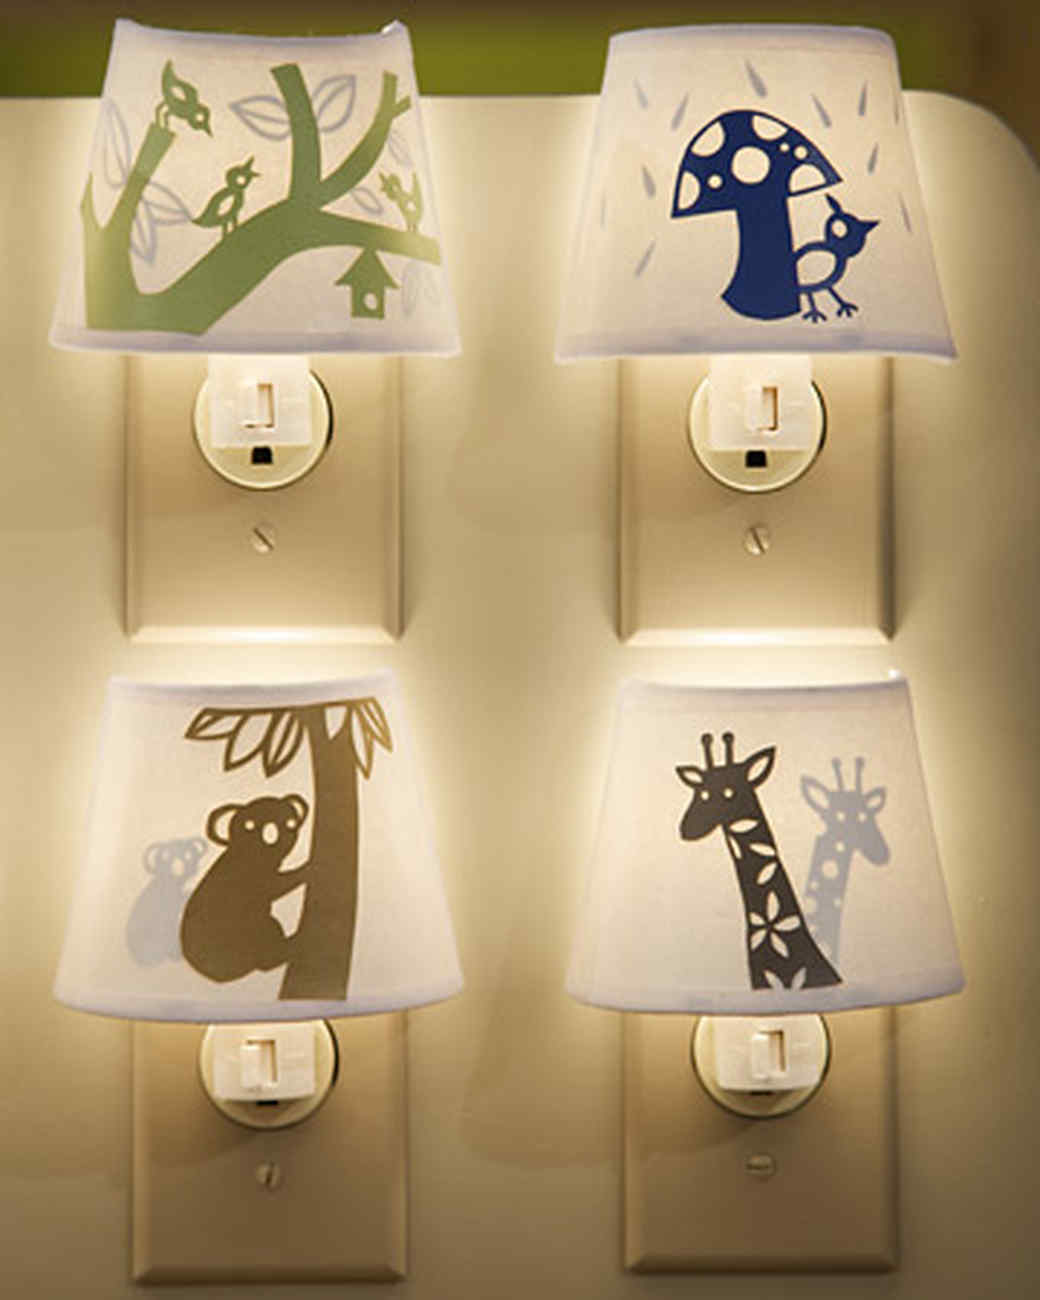 Paper-Cutout Night-Lights